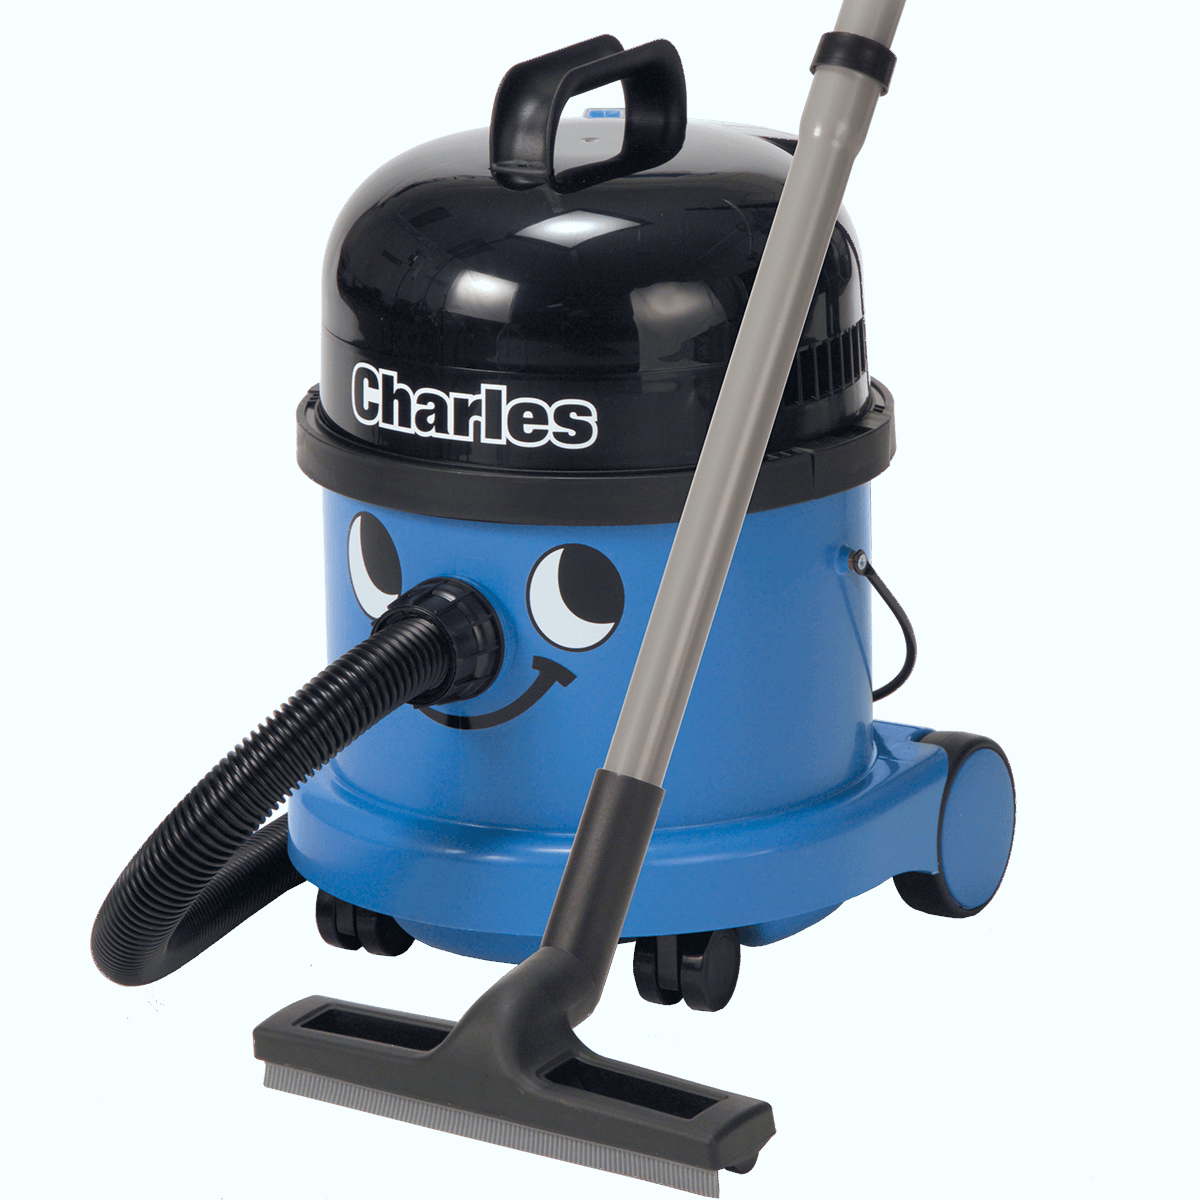 Charles CVC370 Wet/Dry Vacuum - Ready to use! - Super Vacs